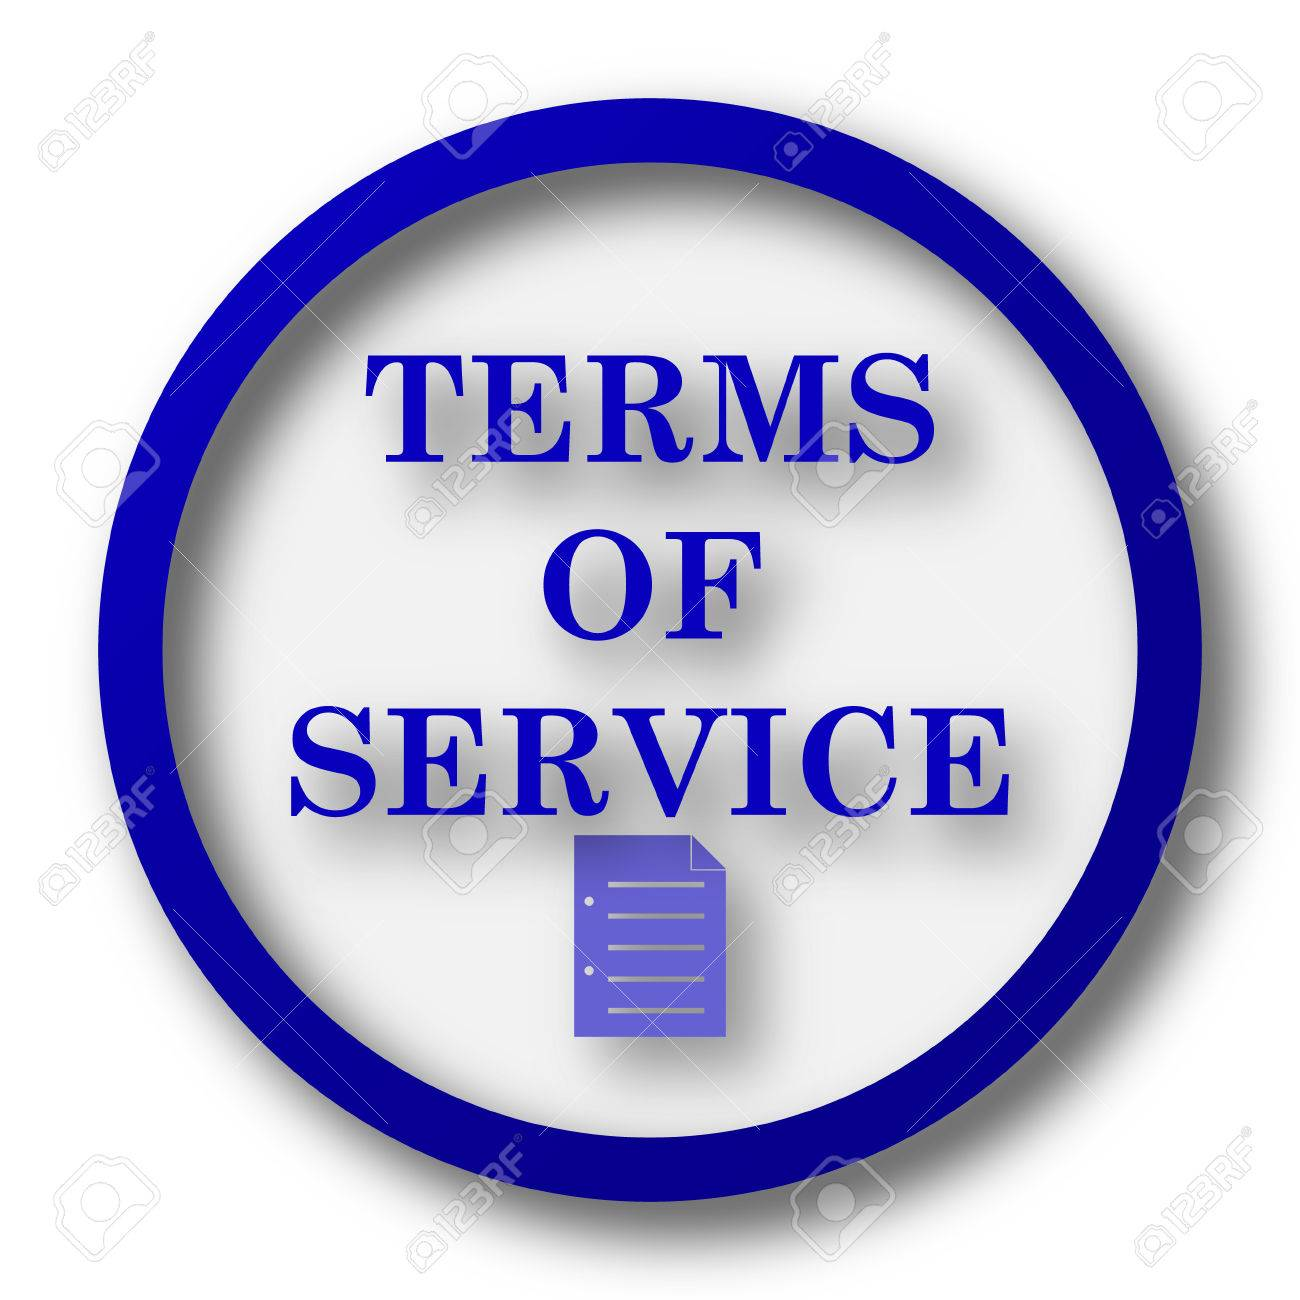 Terms of service icon blue internet button on white background stock photo 40115502